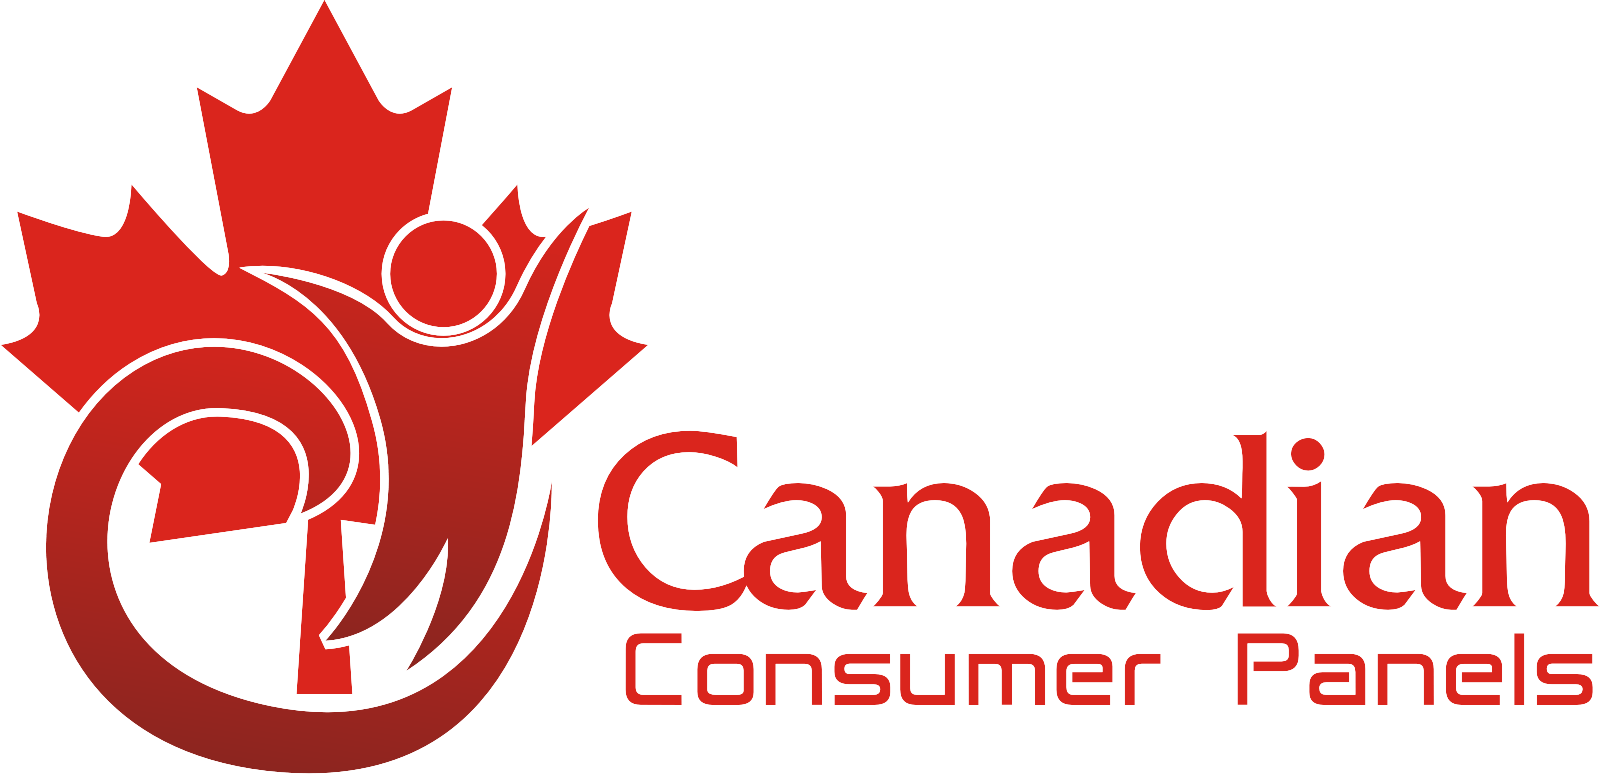 Canadian Consumer Panels